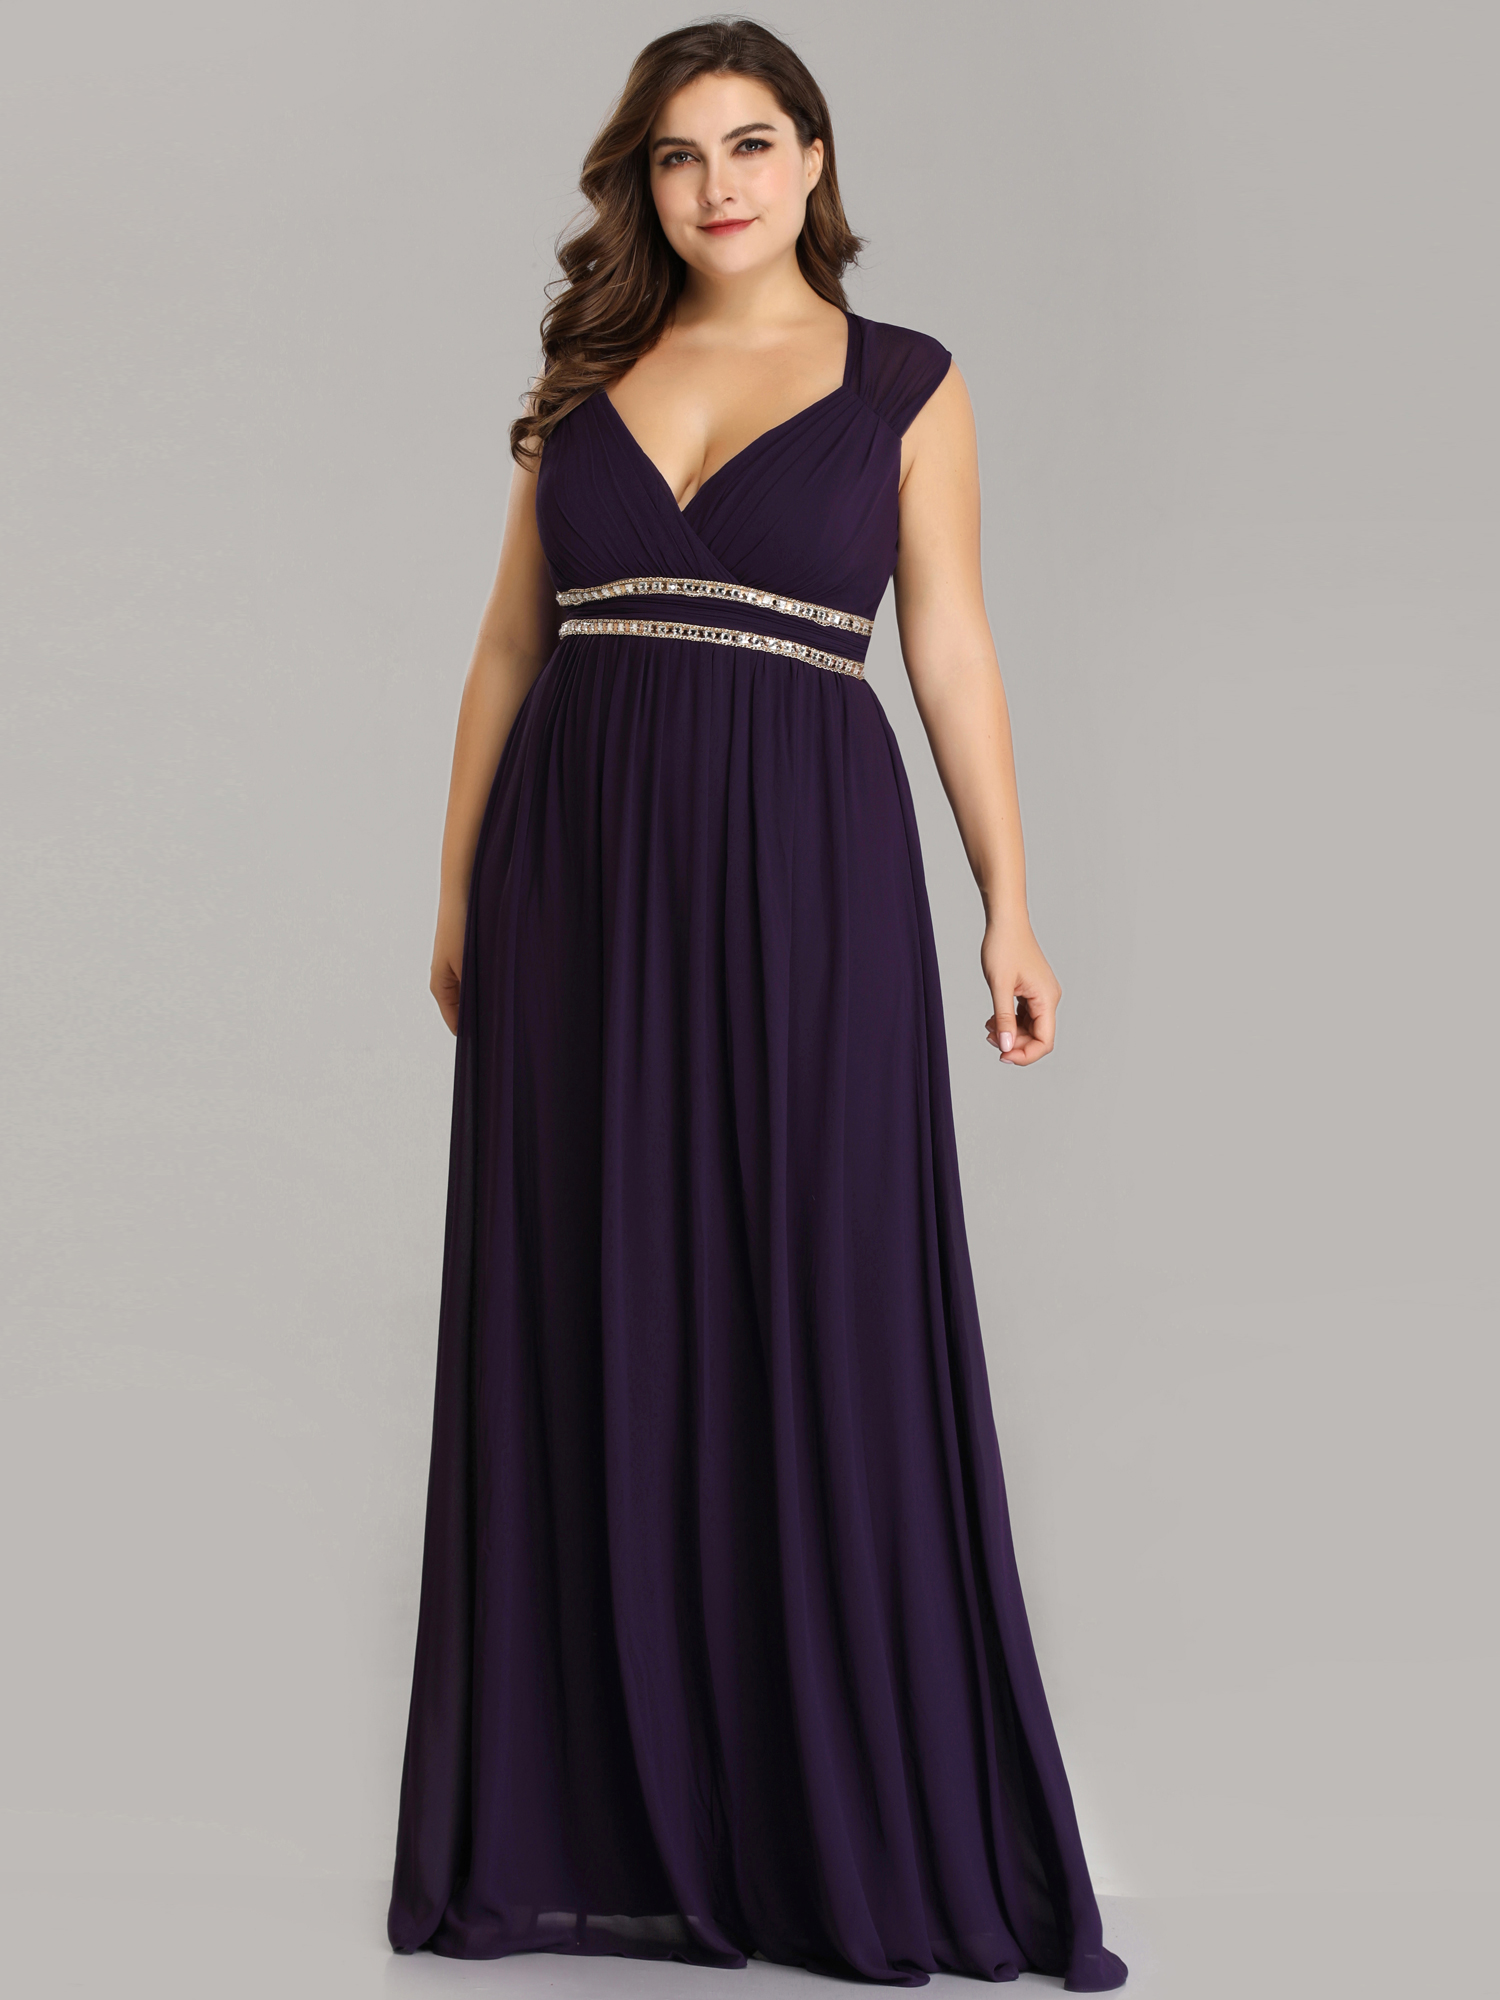 a4bbd9399f6 Ever-pretty - Ever-Pretty Women s Empire Waist Pleated Navy Blue Plus Size  Long Formal Evening Bridesmaid Party Maxi Dresses for Women 08697 US 20 ...